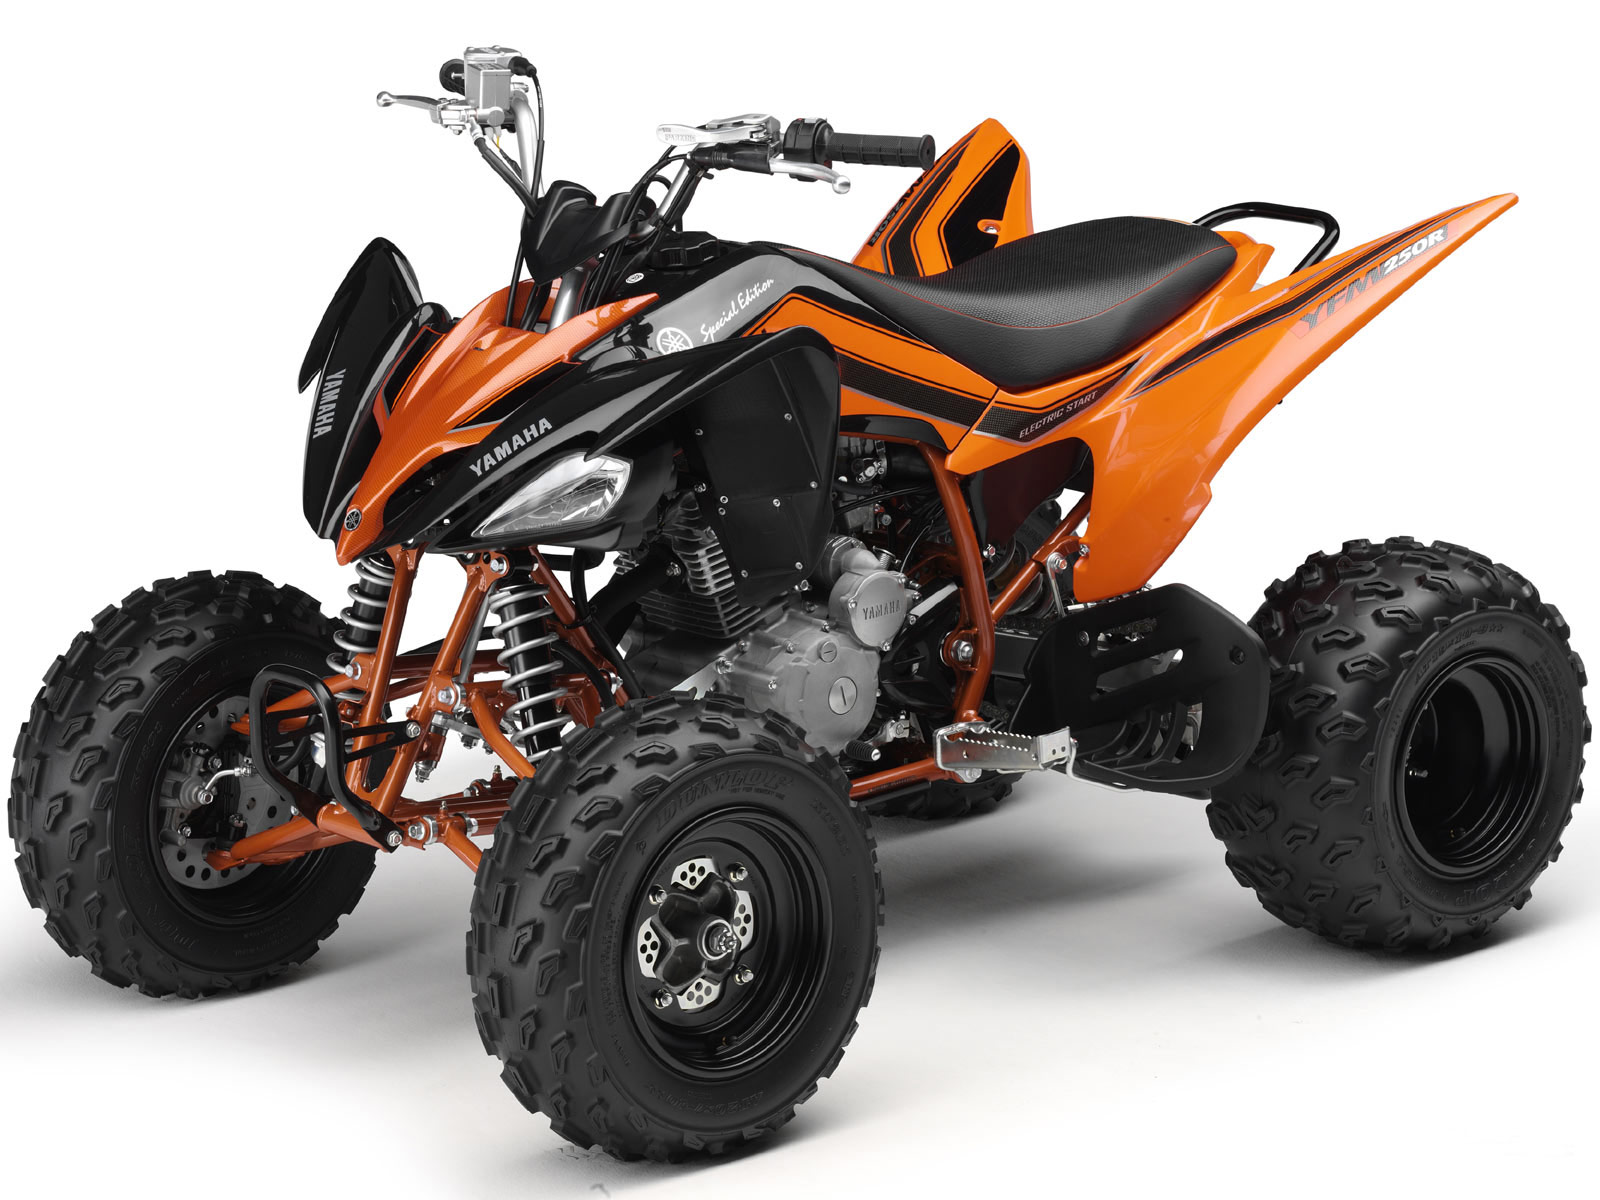 atv pictures 2008 yamaha yfm 250 raptor. Black Bedroom Furniture Sets. Home Design Ideas